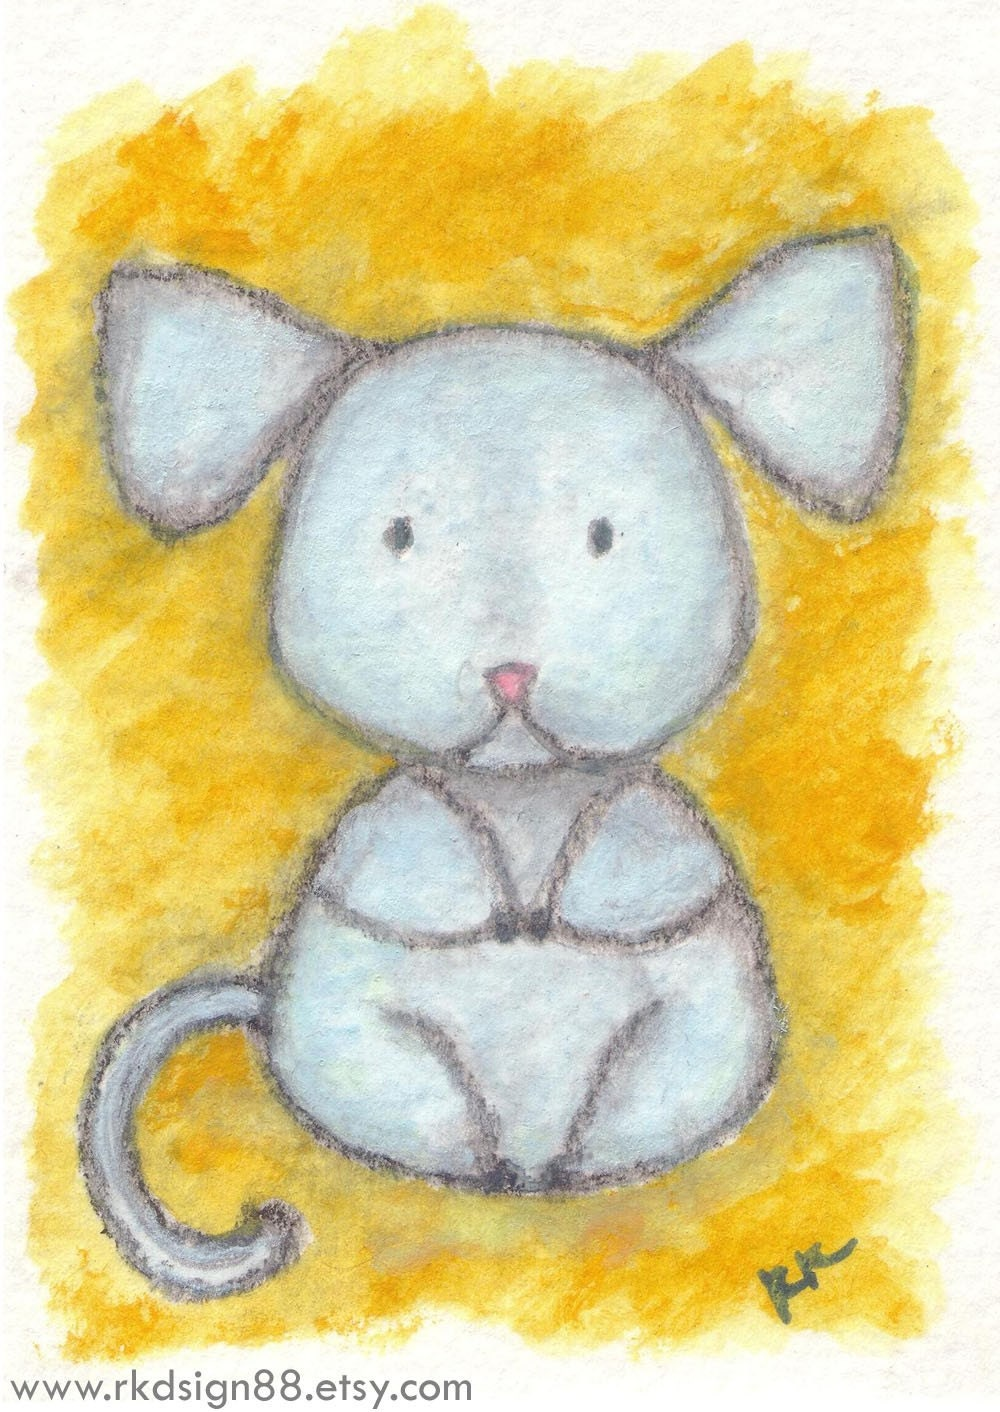 art painting aceo atc rkdsign88.blogspot.com rat mouse drawing etsy chinese zodiac watercolor